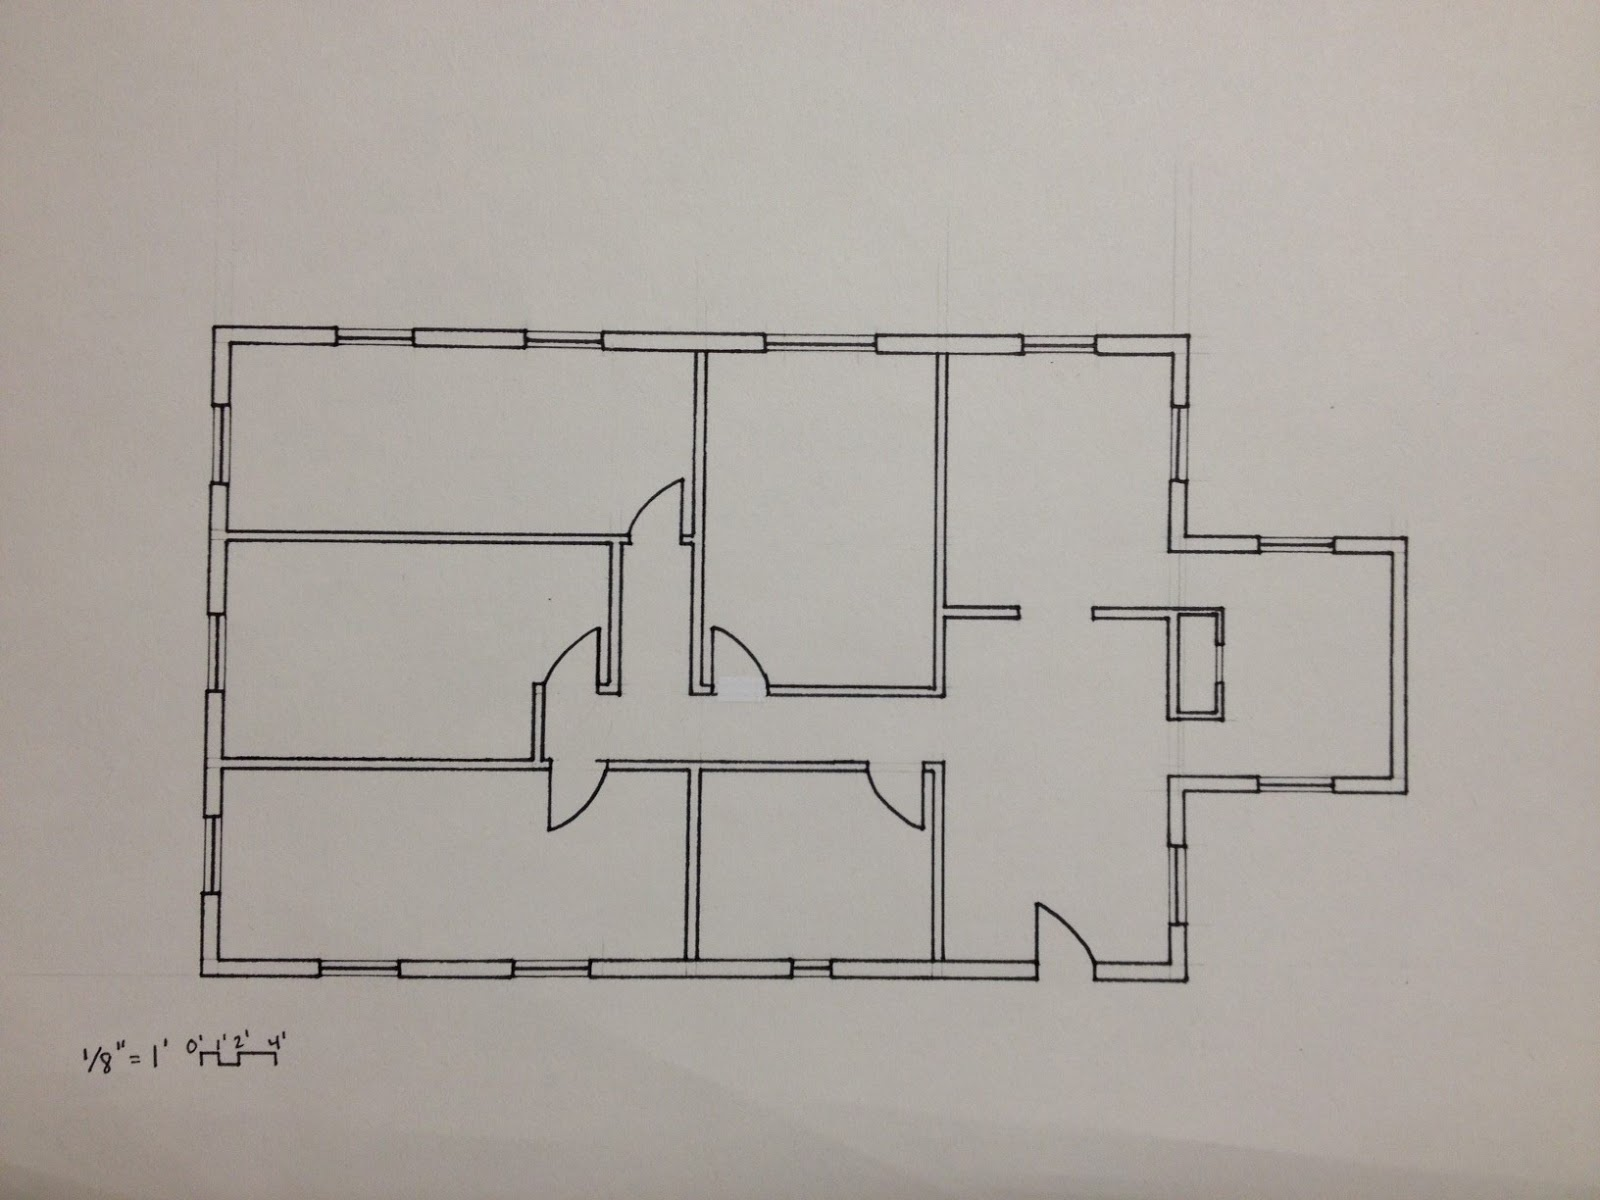 Final Plans And Sections. Nepal Plains House